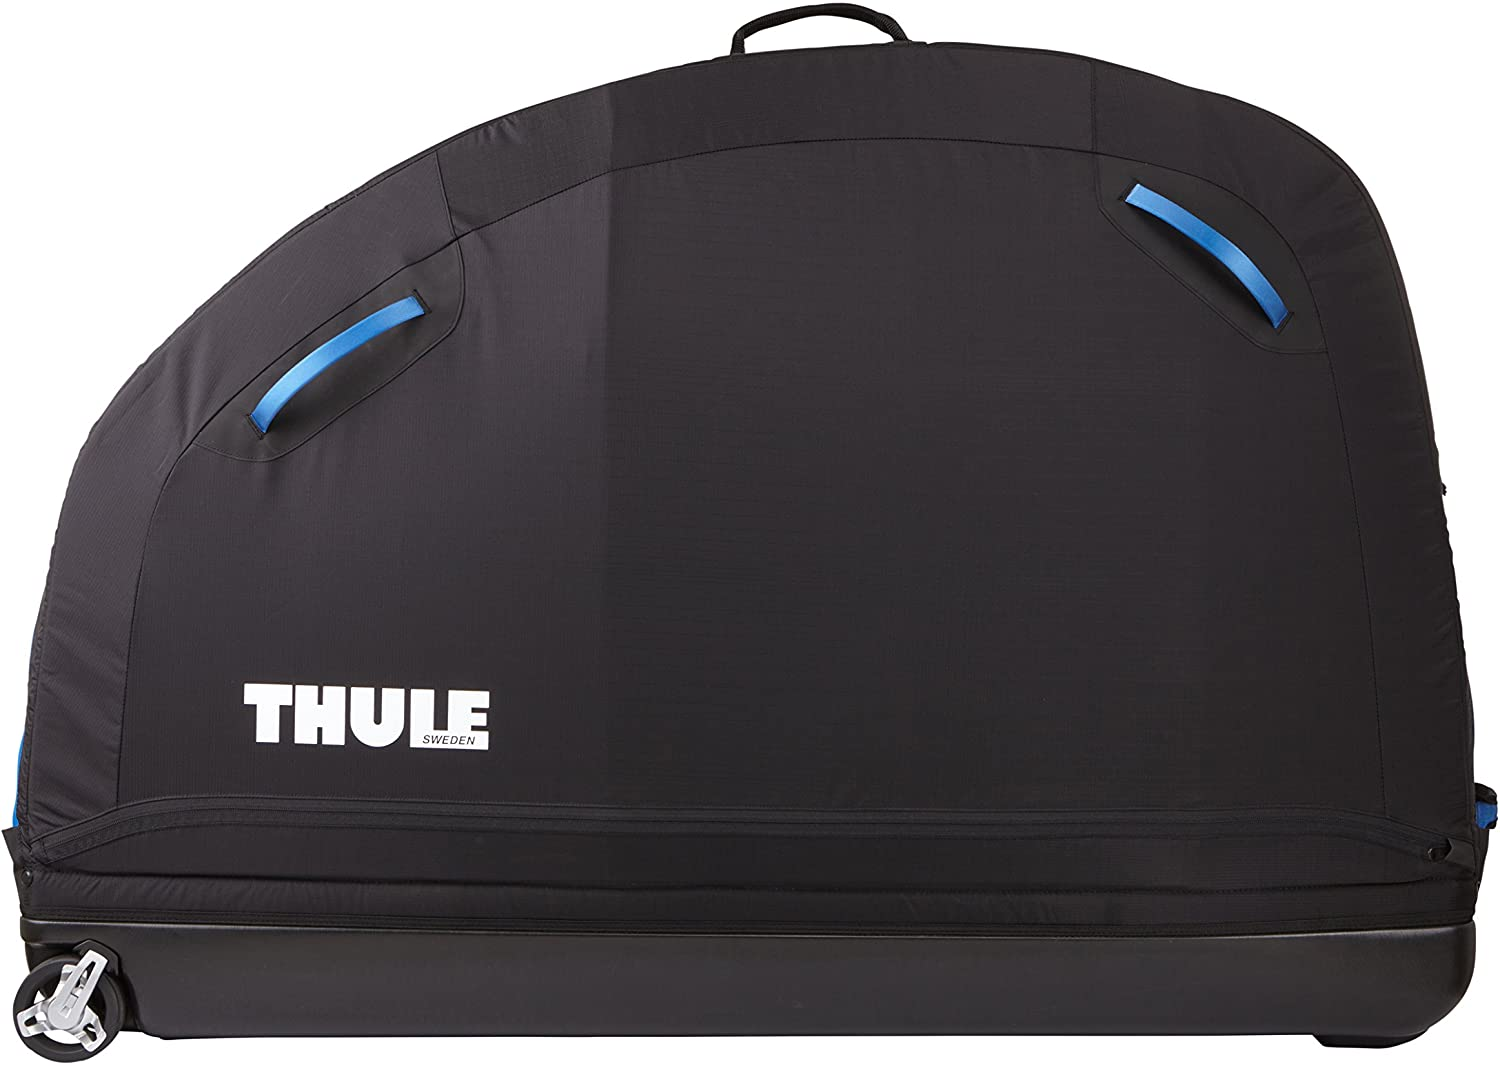 Best Bike Storage Pod: Thule Round Trip Pro XT Bike Case